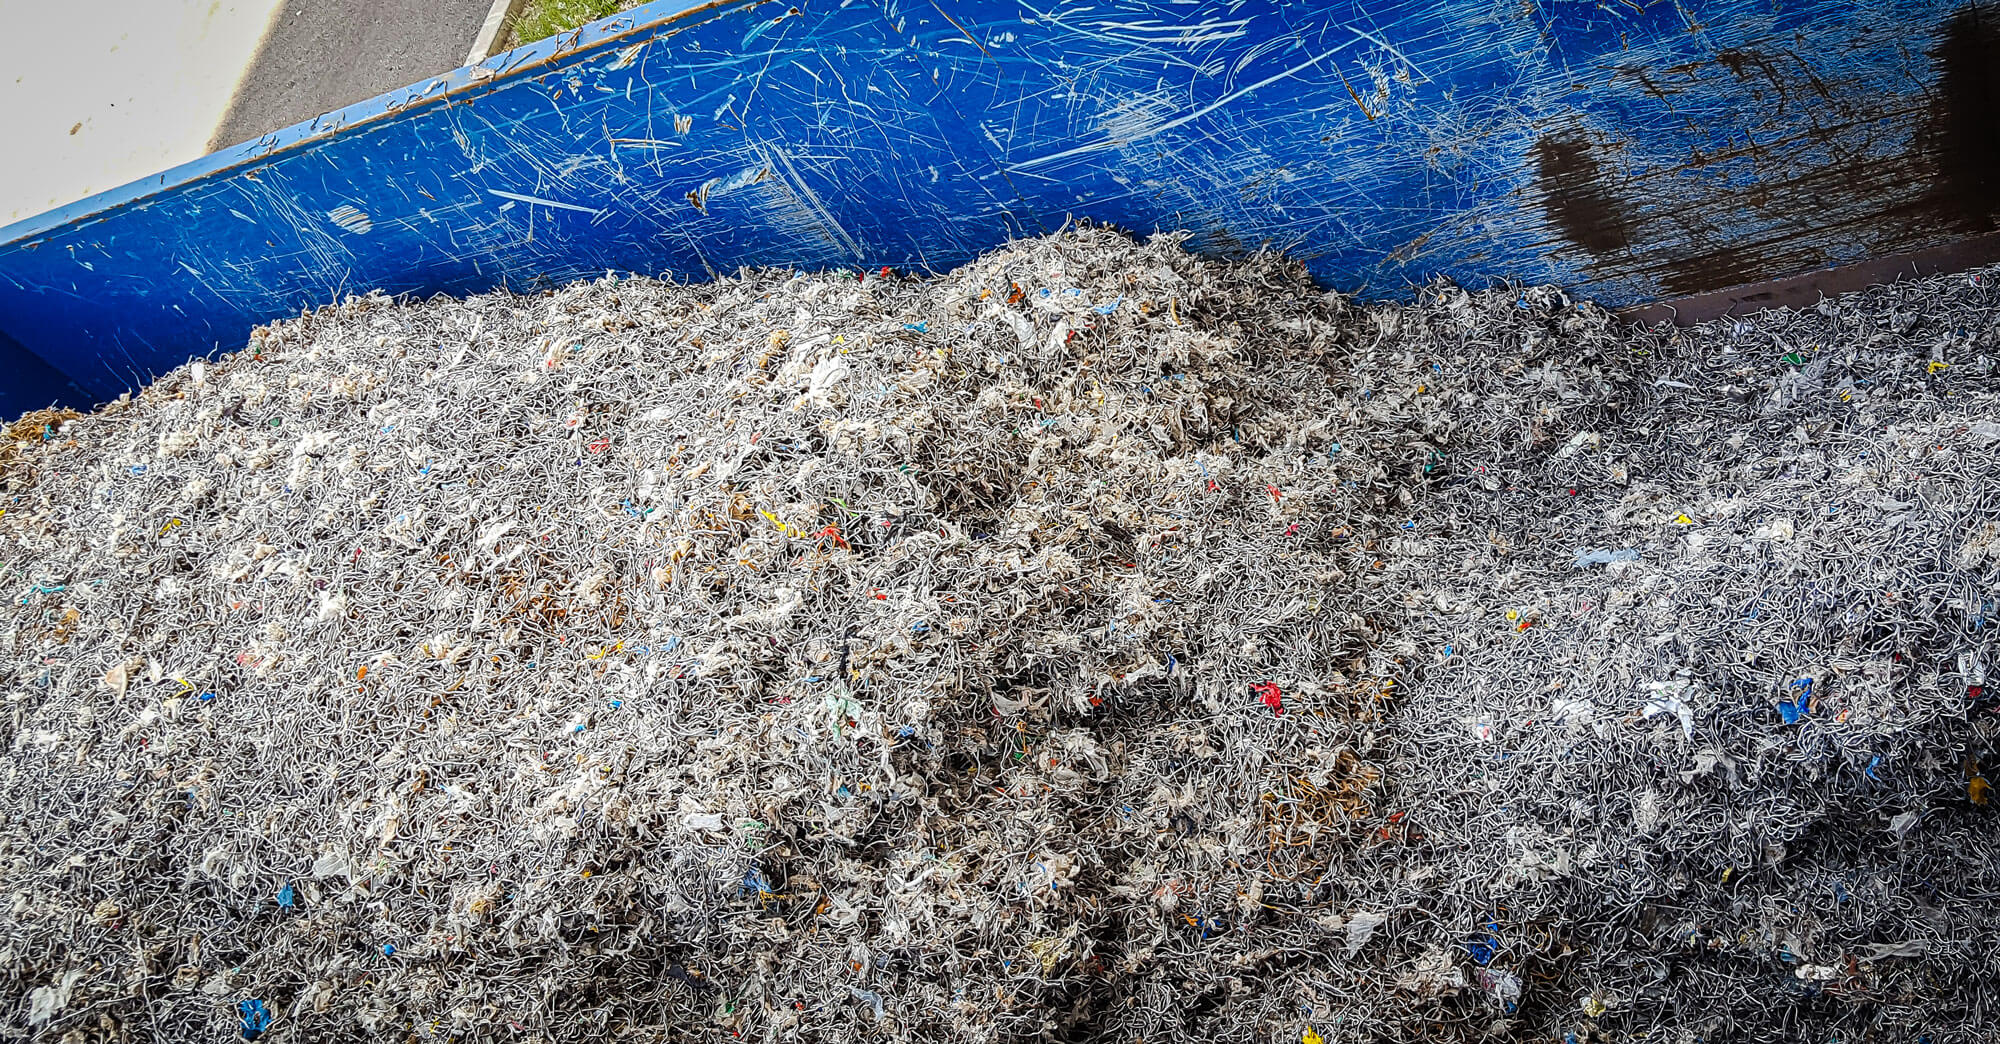 Separation of metal waste from pulper rope cuttings from paper production